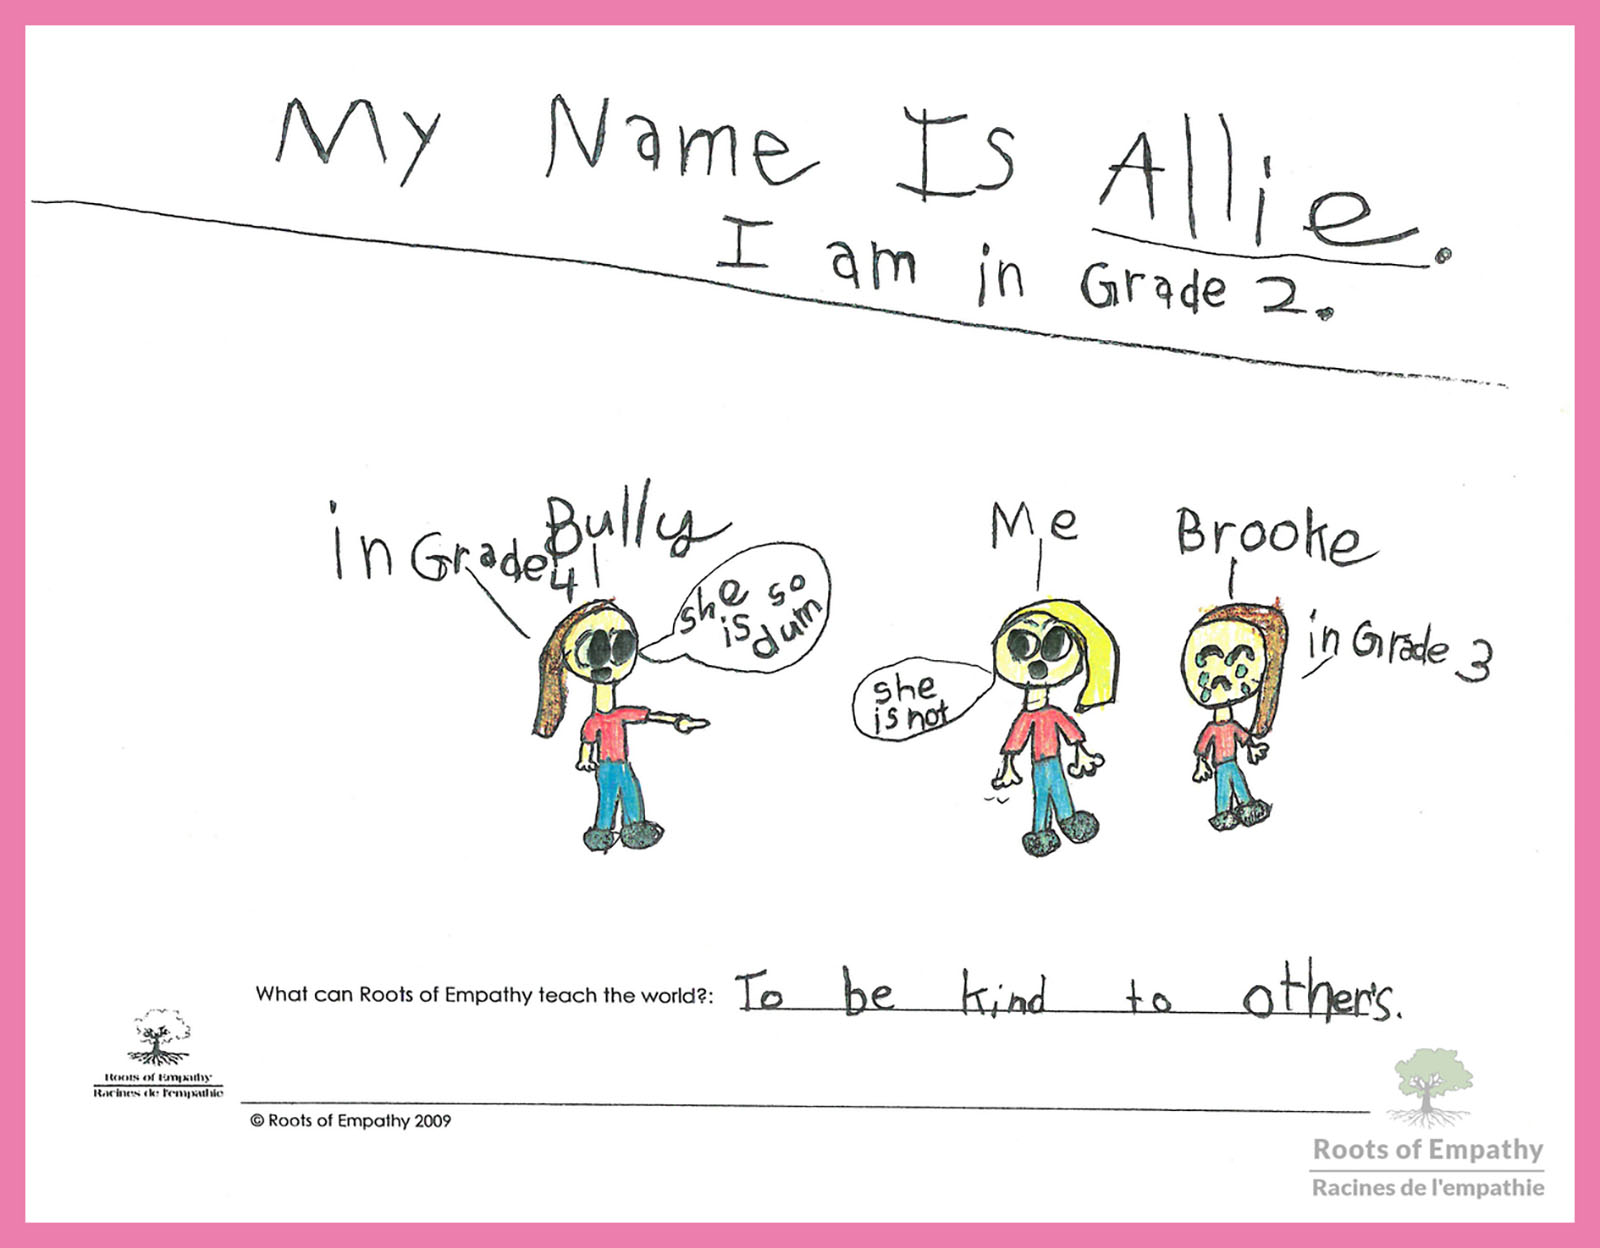 A drawing by Allie in grade 2